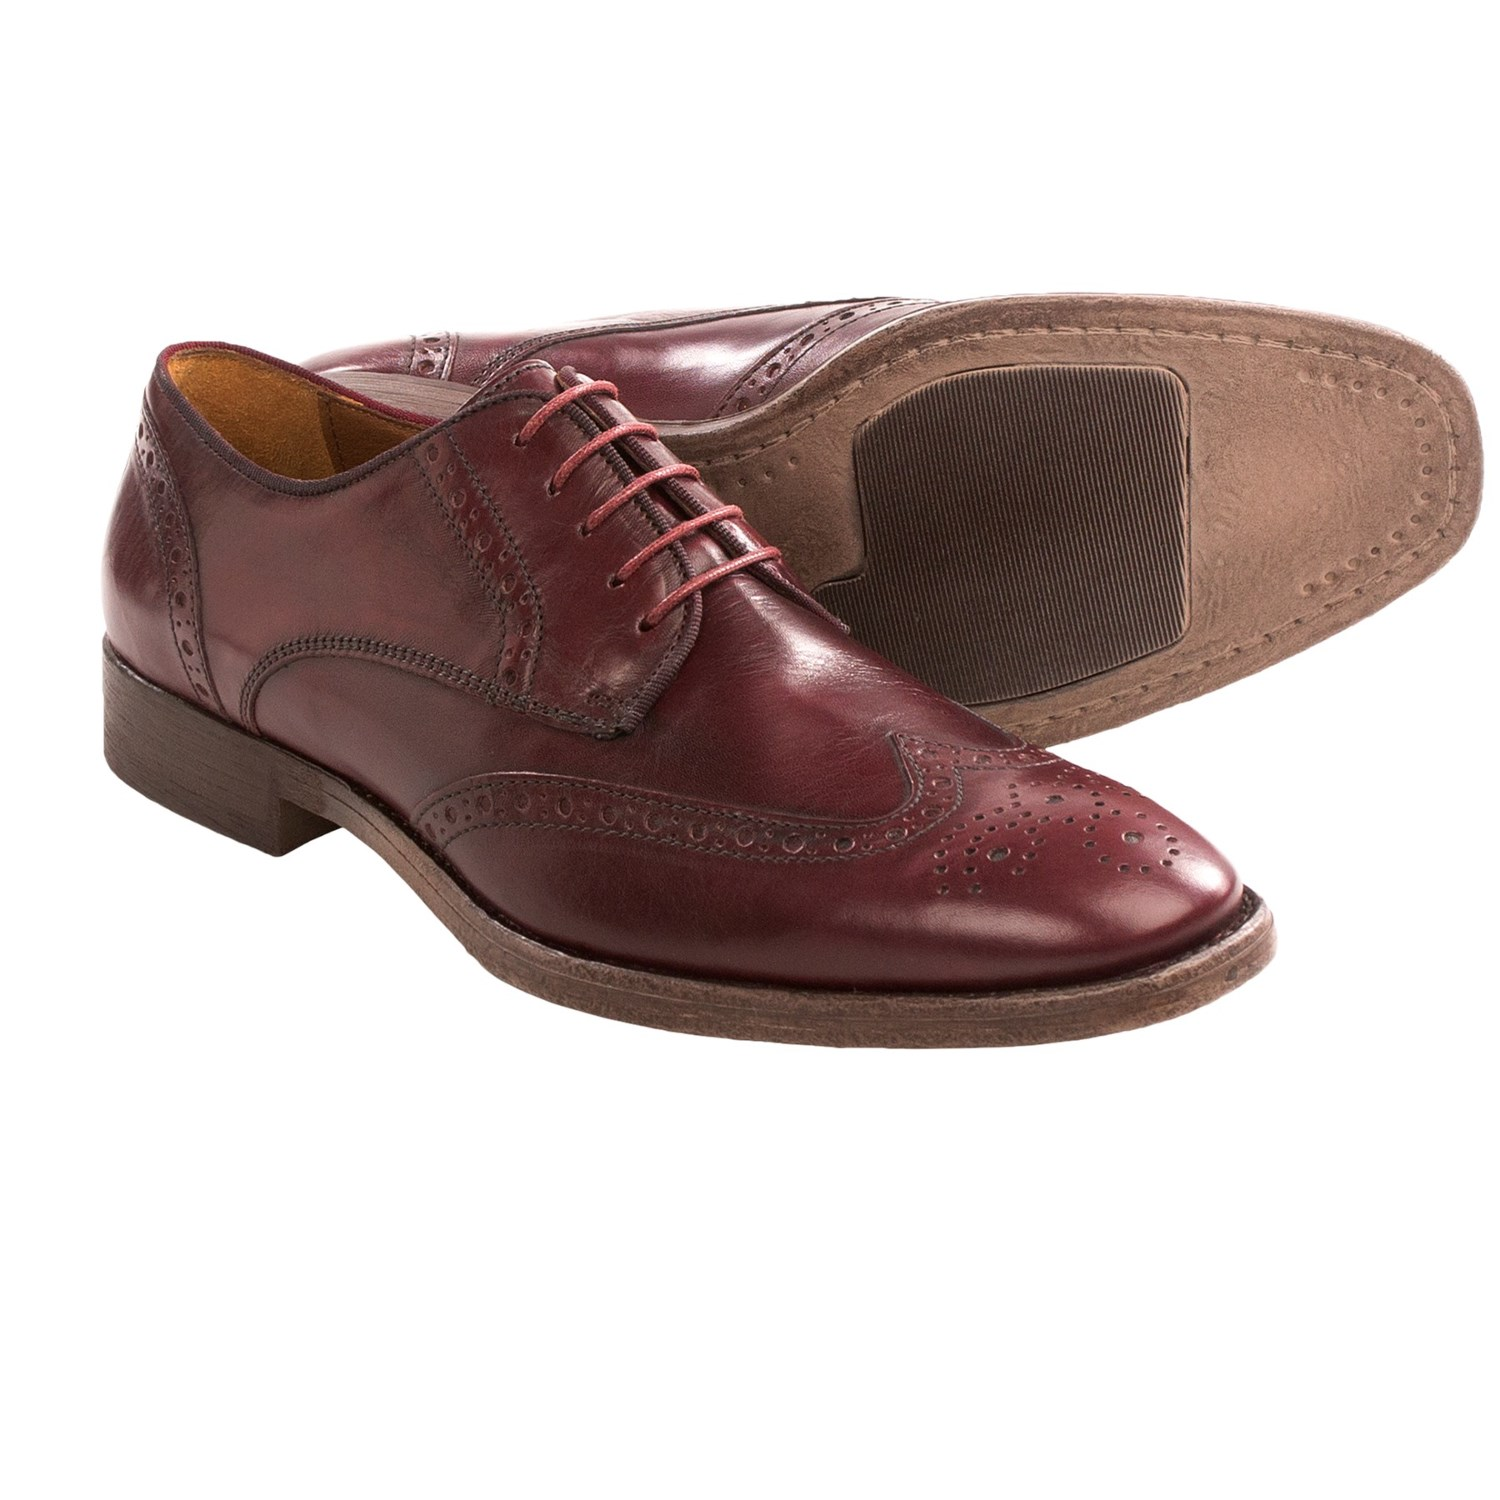 johnston-and-murphy-westmore-wingtip-shoes-for-men-in-burgundy~p~7070w